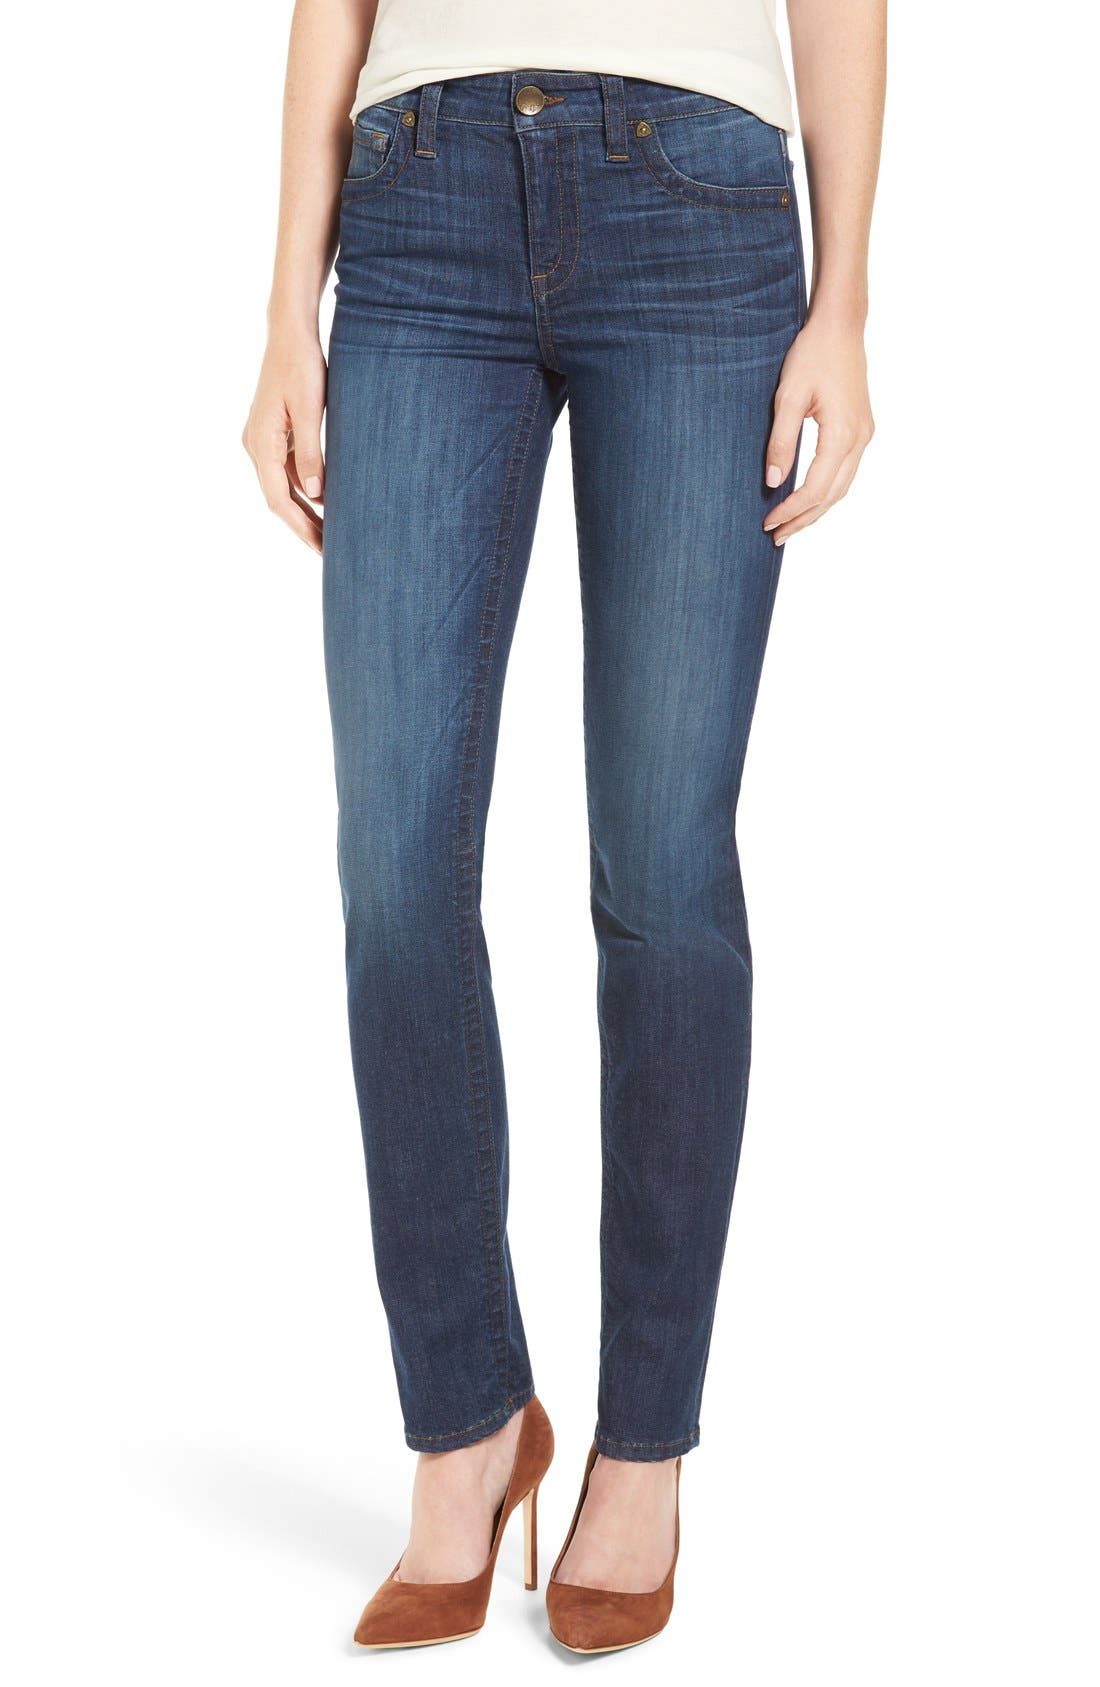 Alternate Image 1 Selected - KUT from the Kloth 'Stevie' Stretch Straight Leg Jeans (Admiration)